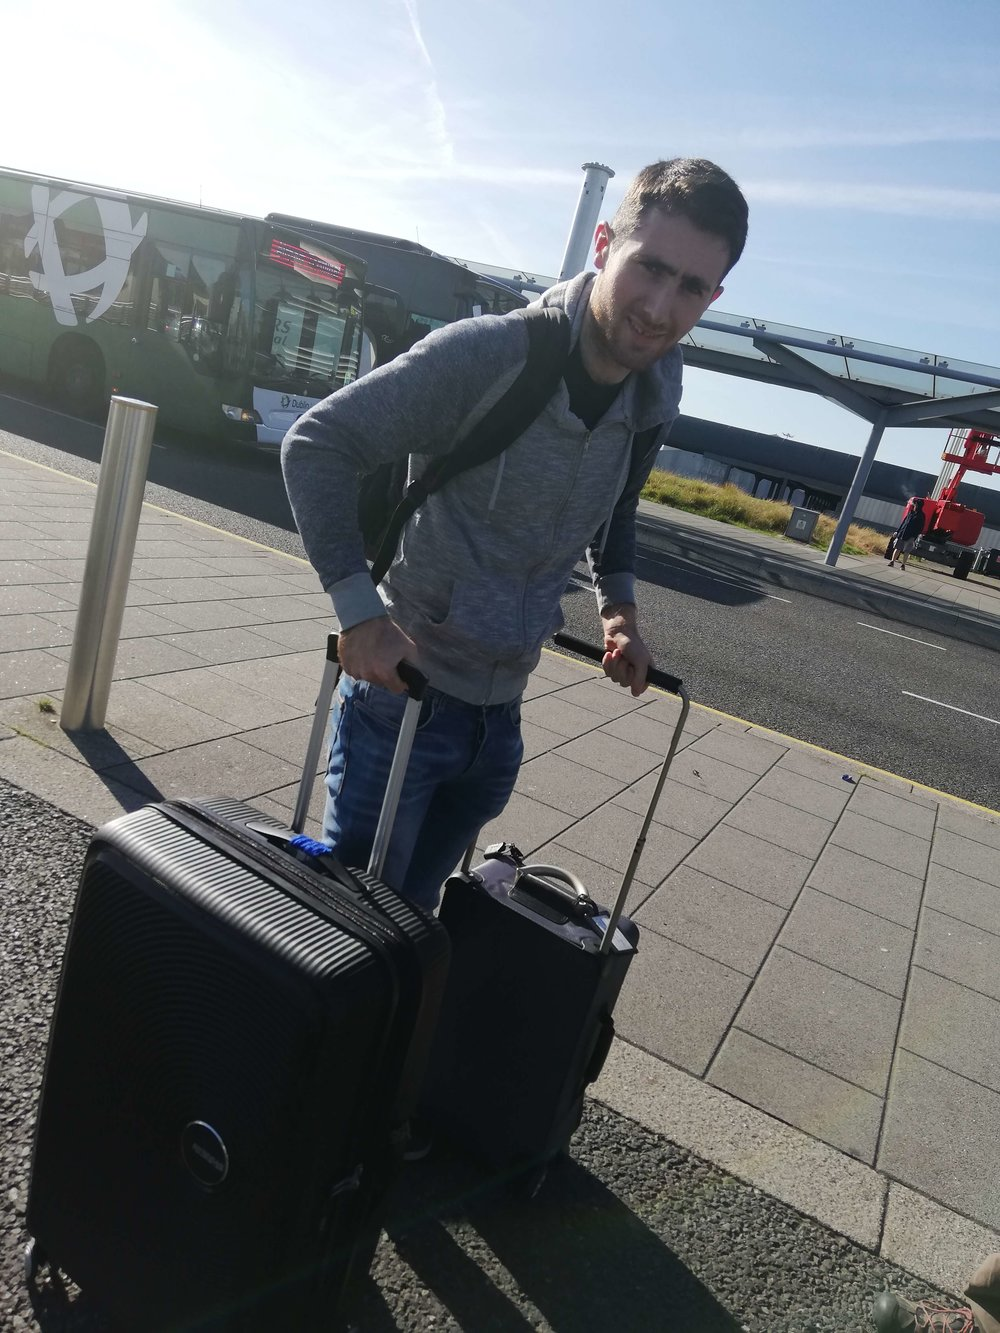 Man with two suitcases at the airport